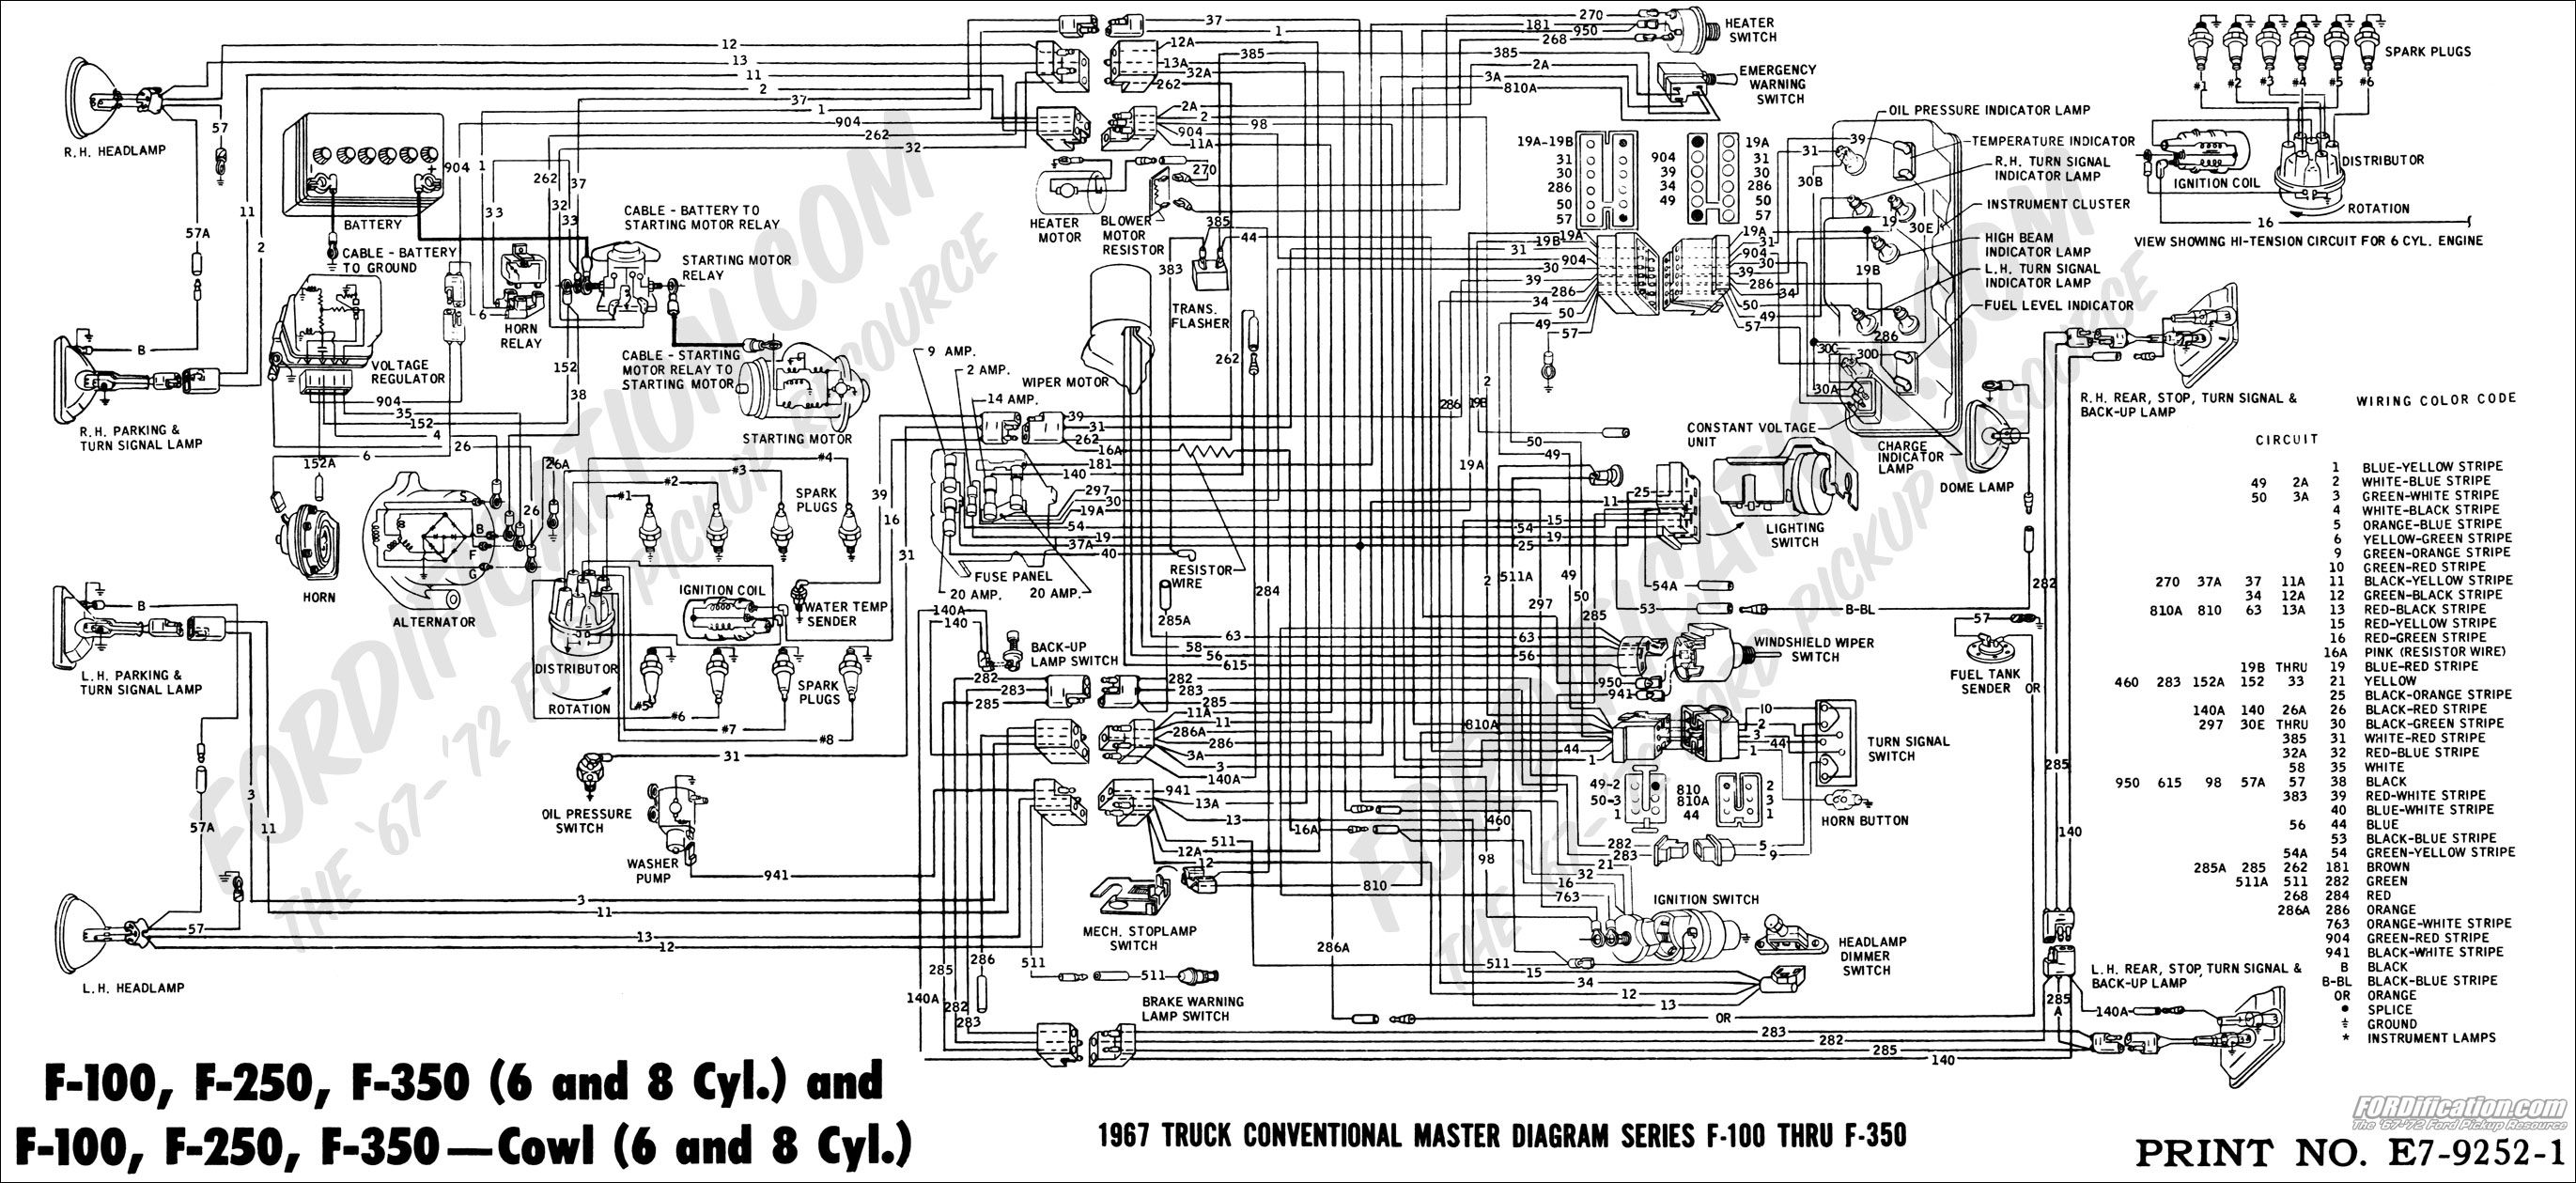 8e608320d8e6c71ff5bbdb2efdd7ada1 ford truck technical drawings and schematics section h wiring Ford E 350 Wiring Diagrams at couponss.co